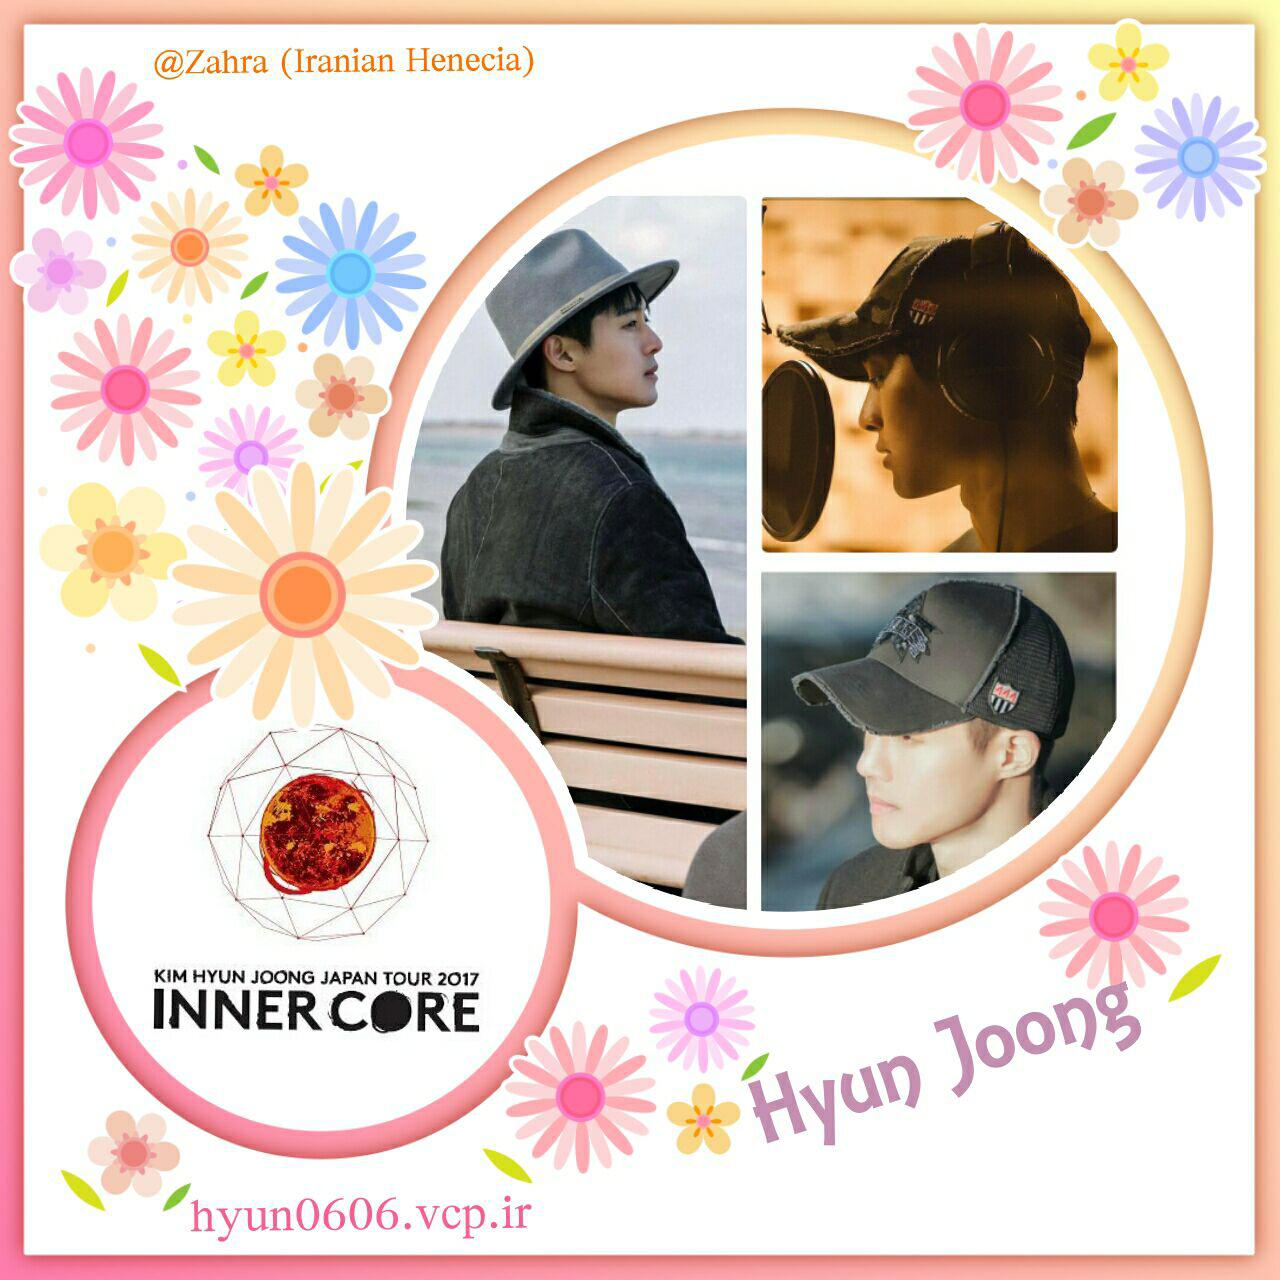 My Fanart of Kim Hyun Joong Japan Tour 2017 Inner Core